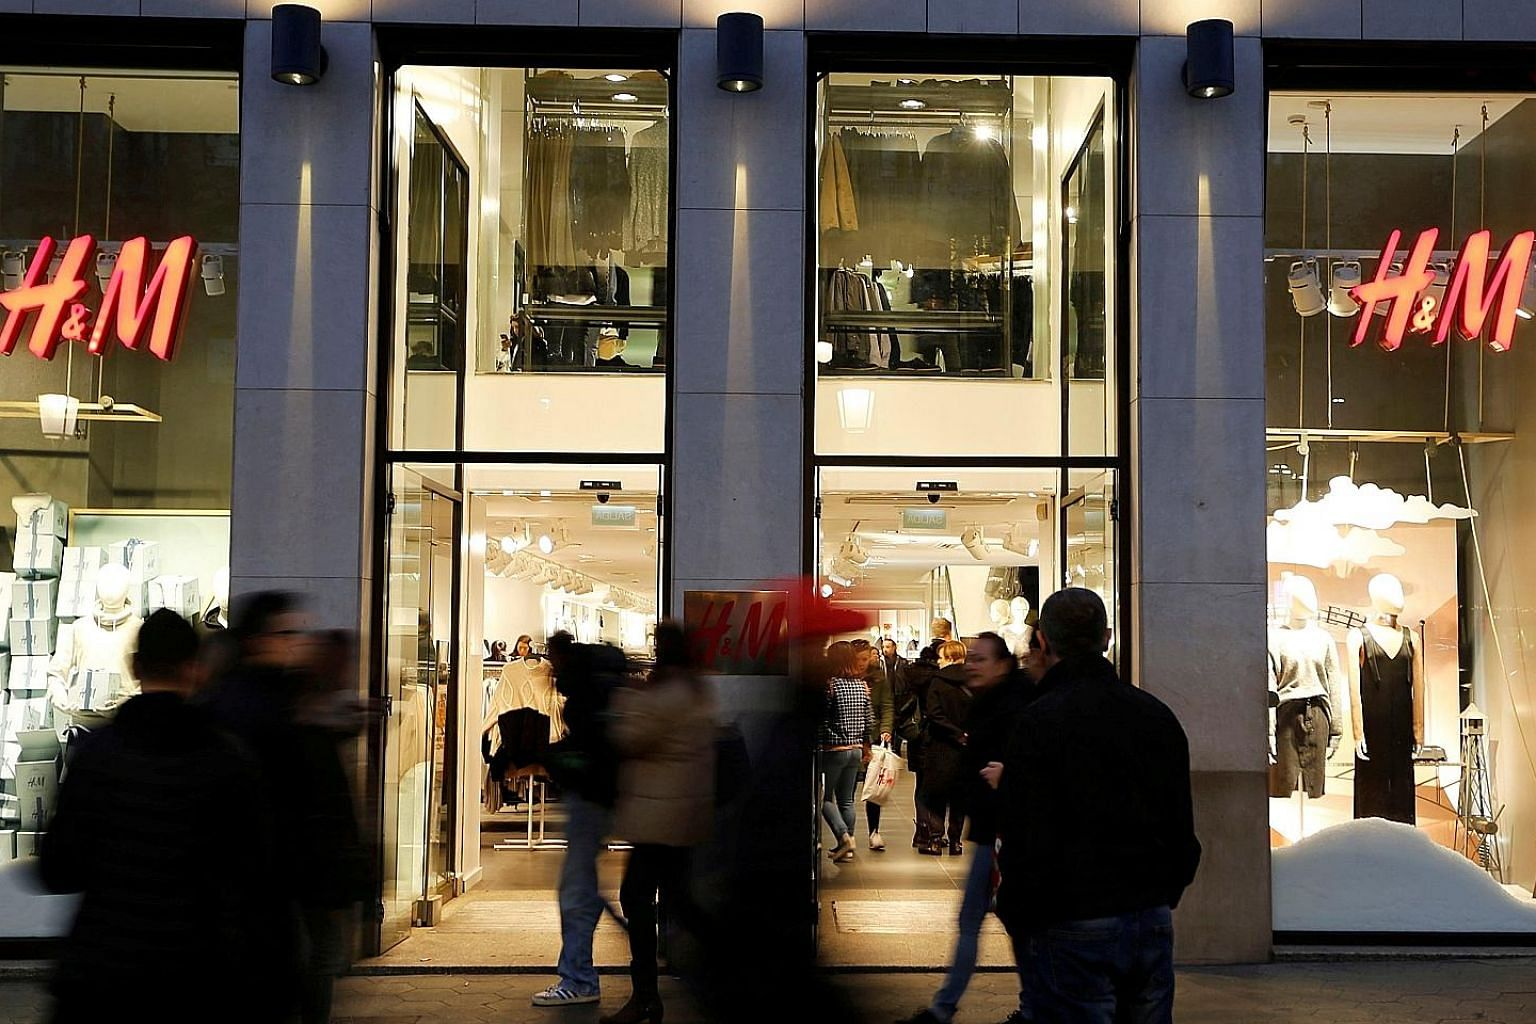 H&M (above) has struggled to keep up with competitors after fashion mistakes and delivery hiccups made customers turn elsewhere, resulting in a record level of inventory at the end of the first quarter. The clothing retailer's target is 220 net store addi